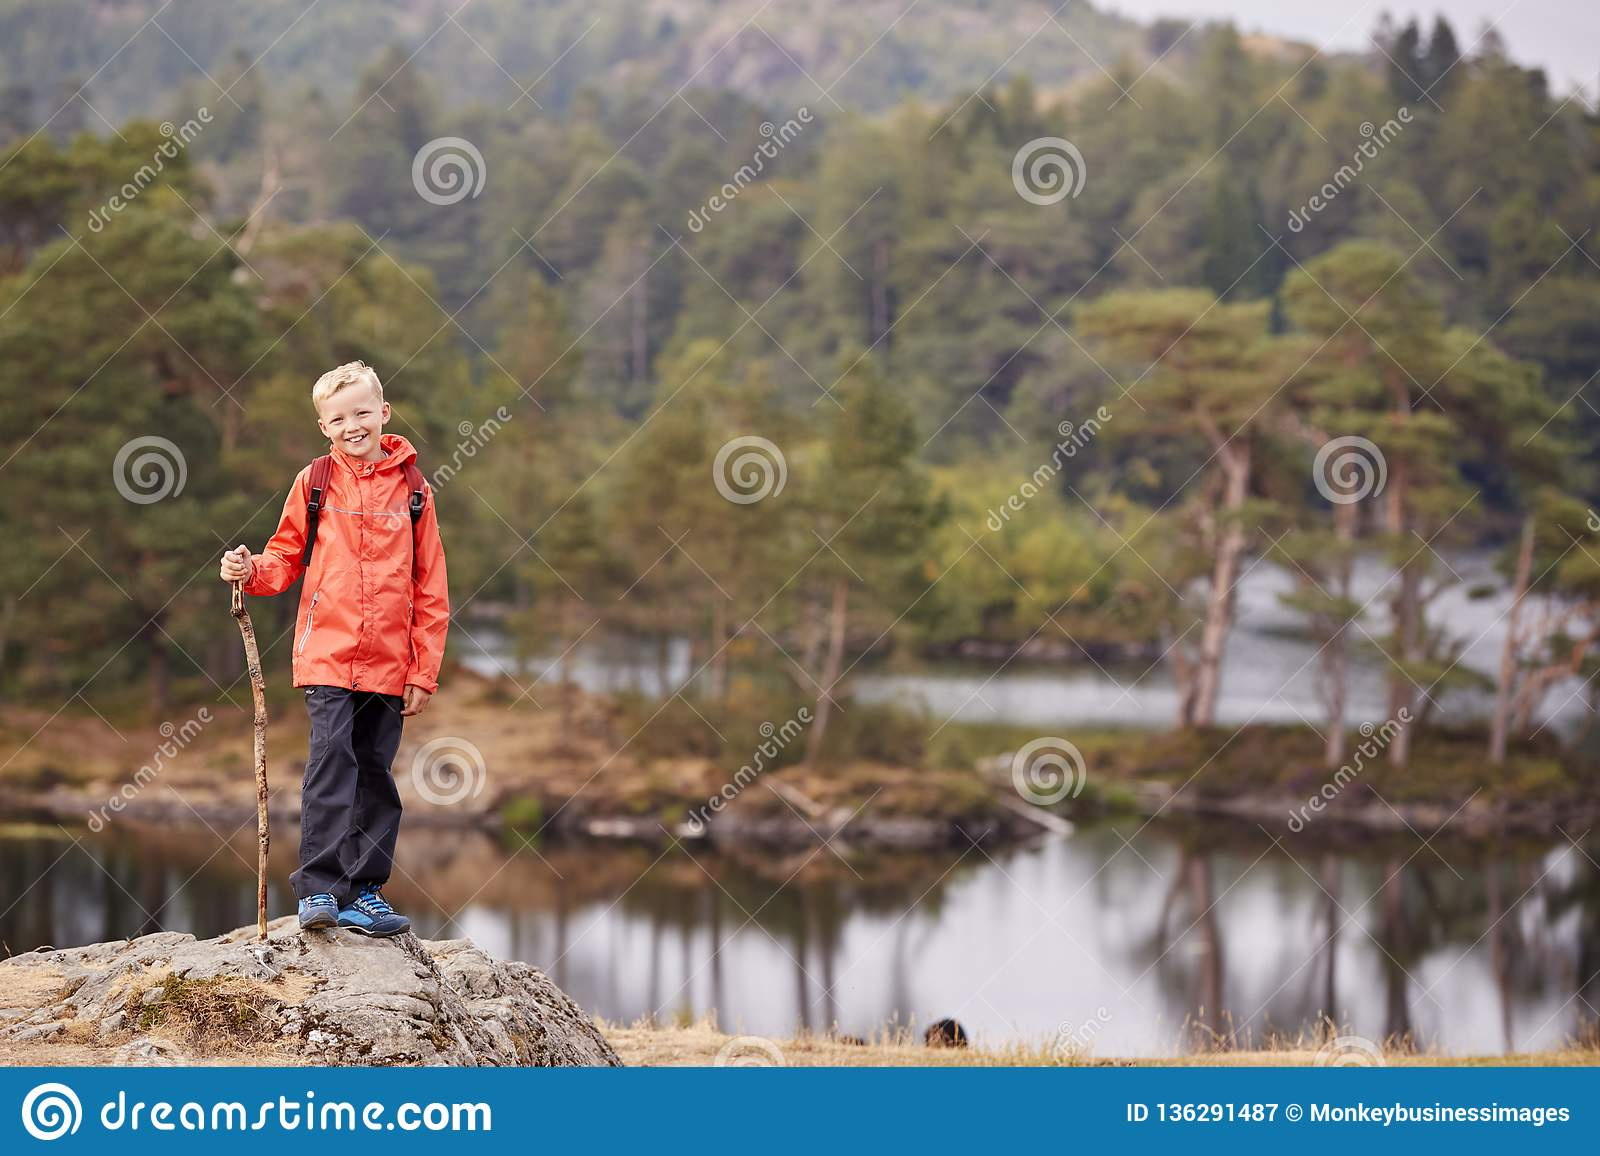 A boy standing on a rock by a lake holding a stick, smiling to camera, Lake District, UK